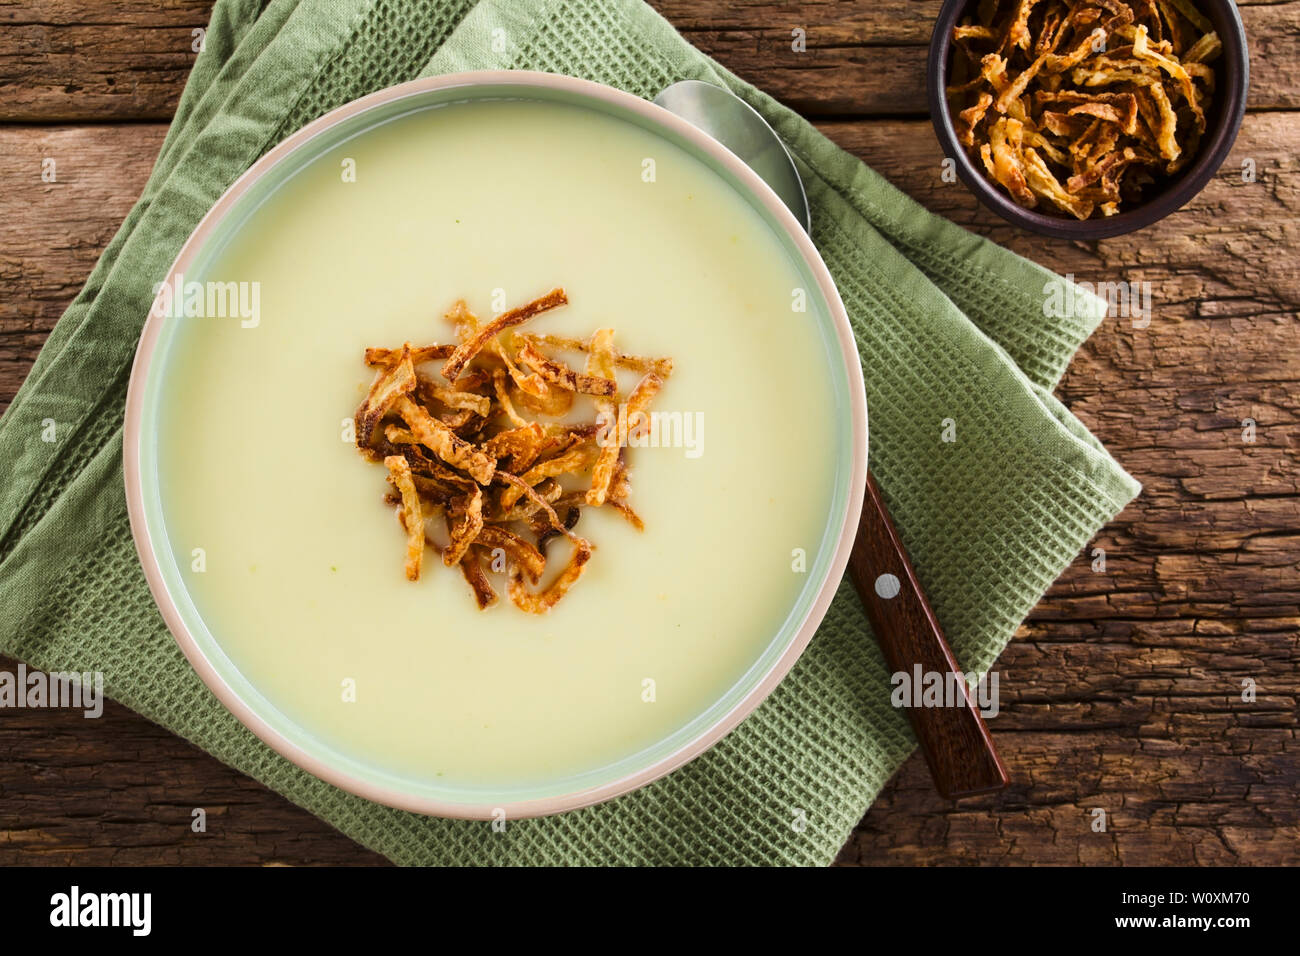 Fresh homemade cream of potato soup in bowl garnished with crispy onion strings, photographed overhead (Selective Focus, Focus on the soup) - Stock Image